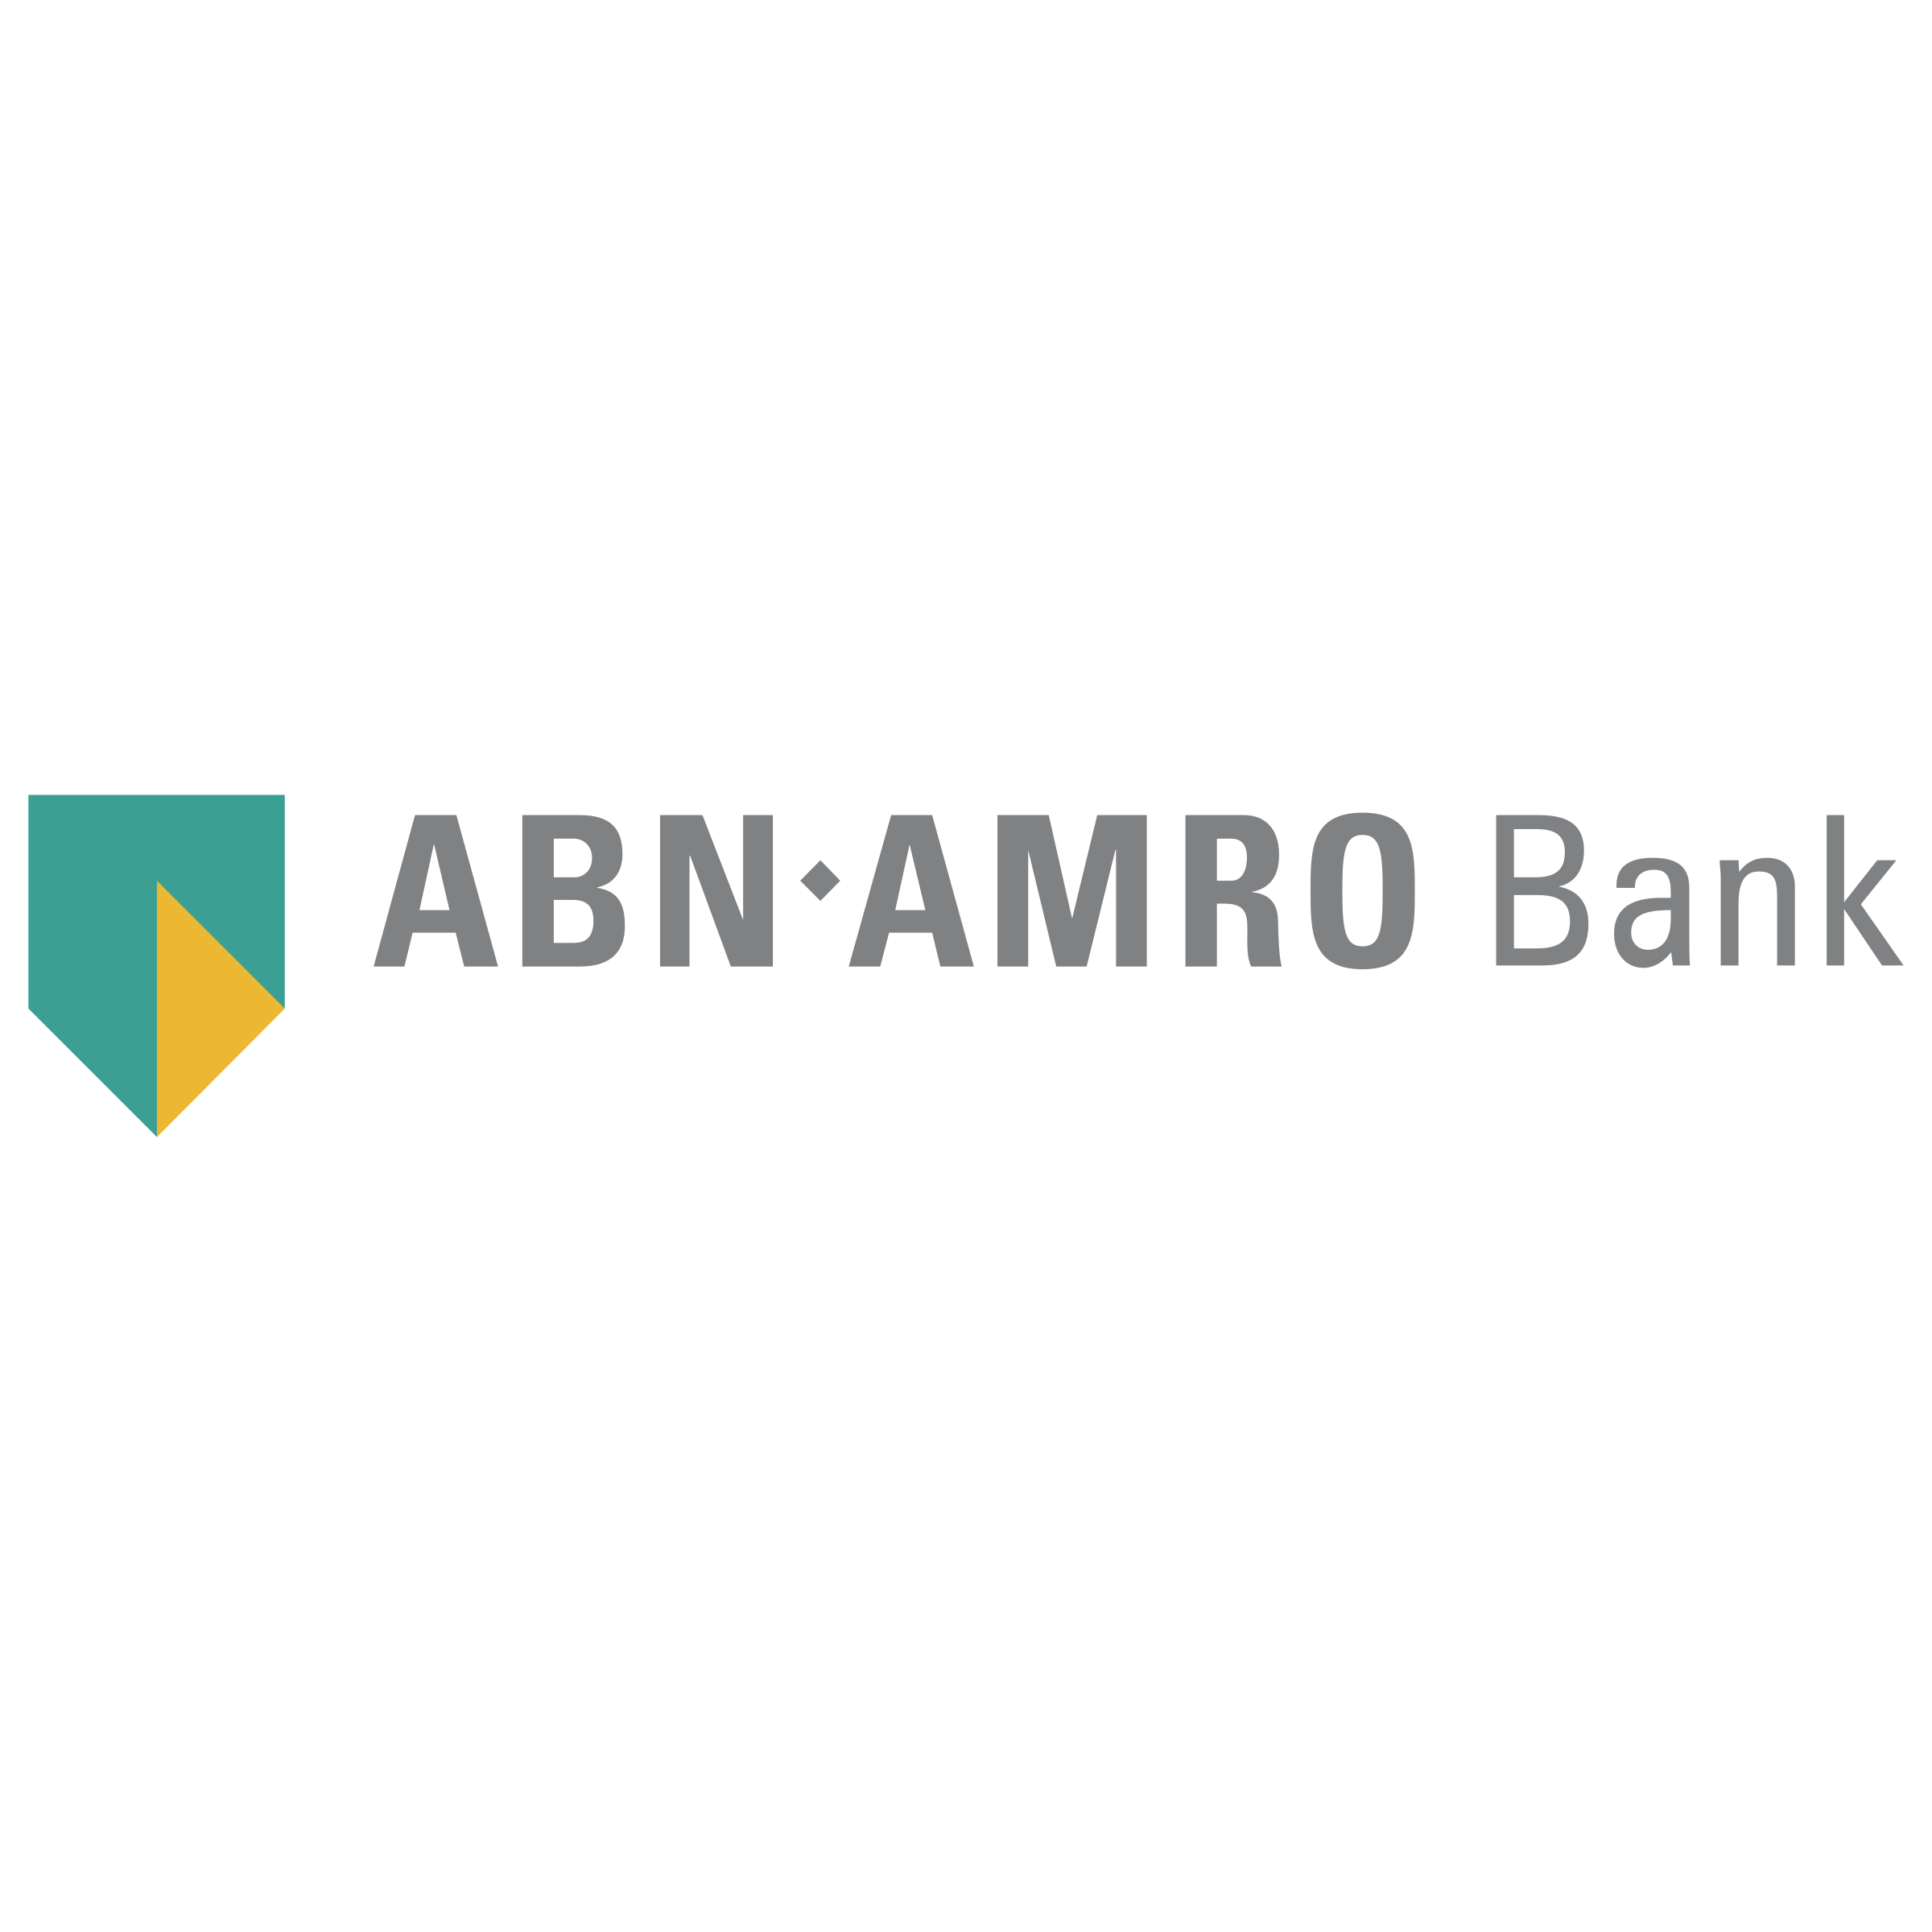 Abn Amro Bank Logo PNG Transparent & SVG Vector.